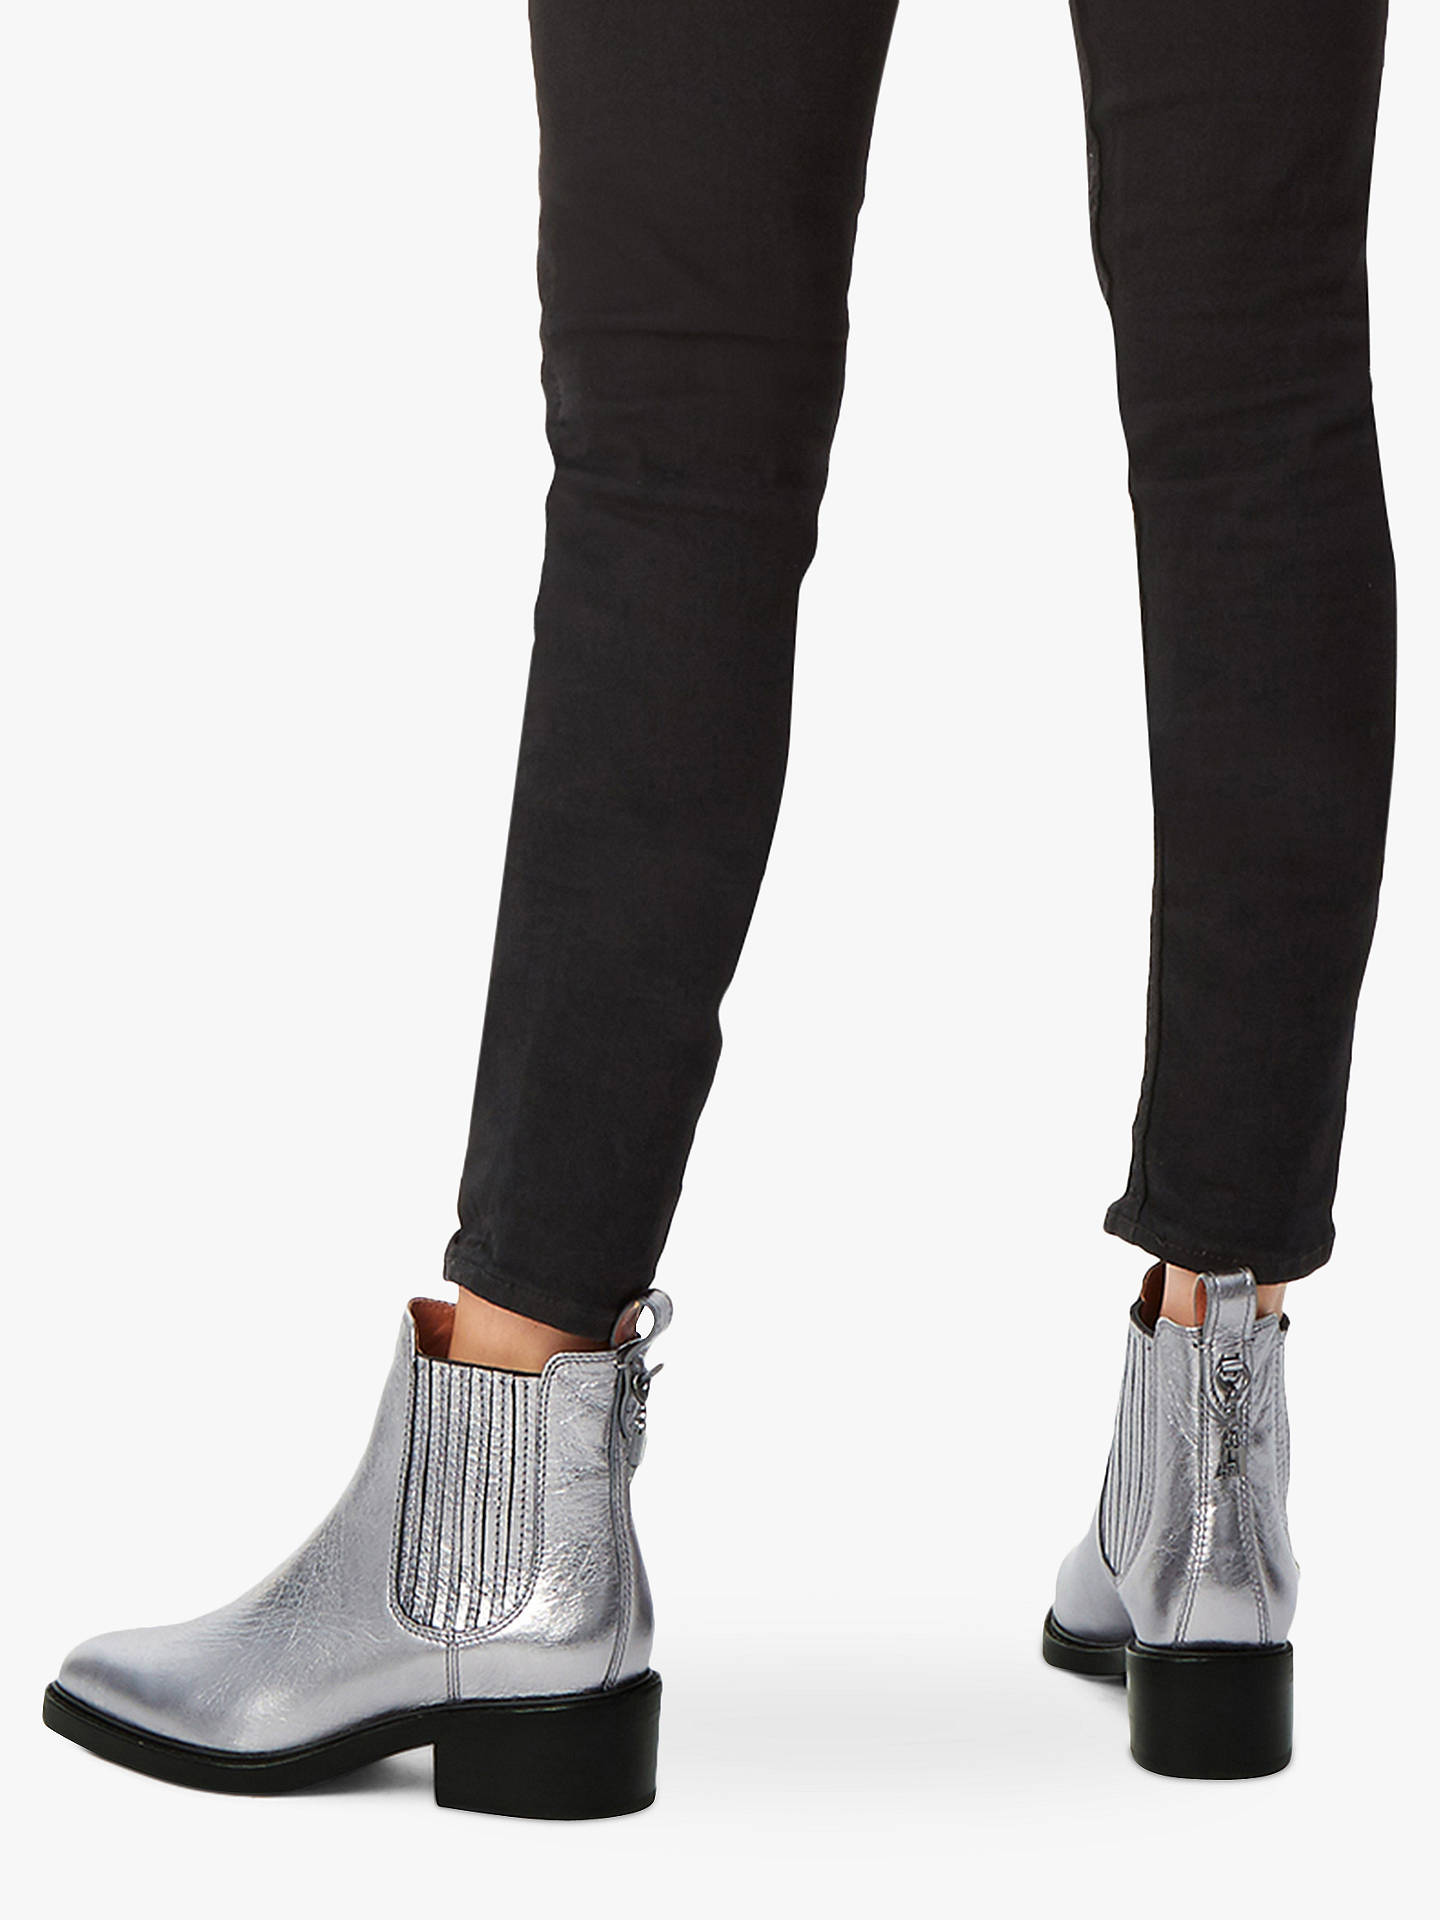 5da4bc98c Buy Coach Bowery Chelsea Block Heel Ankle Boots, Silver, 2 Online at  johnlewis.